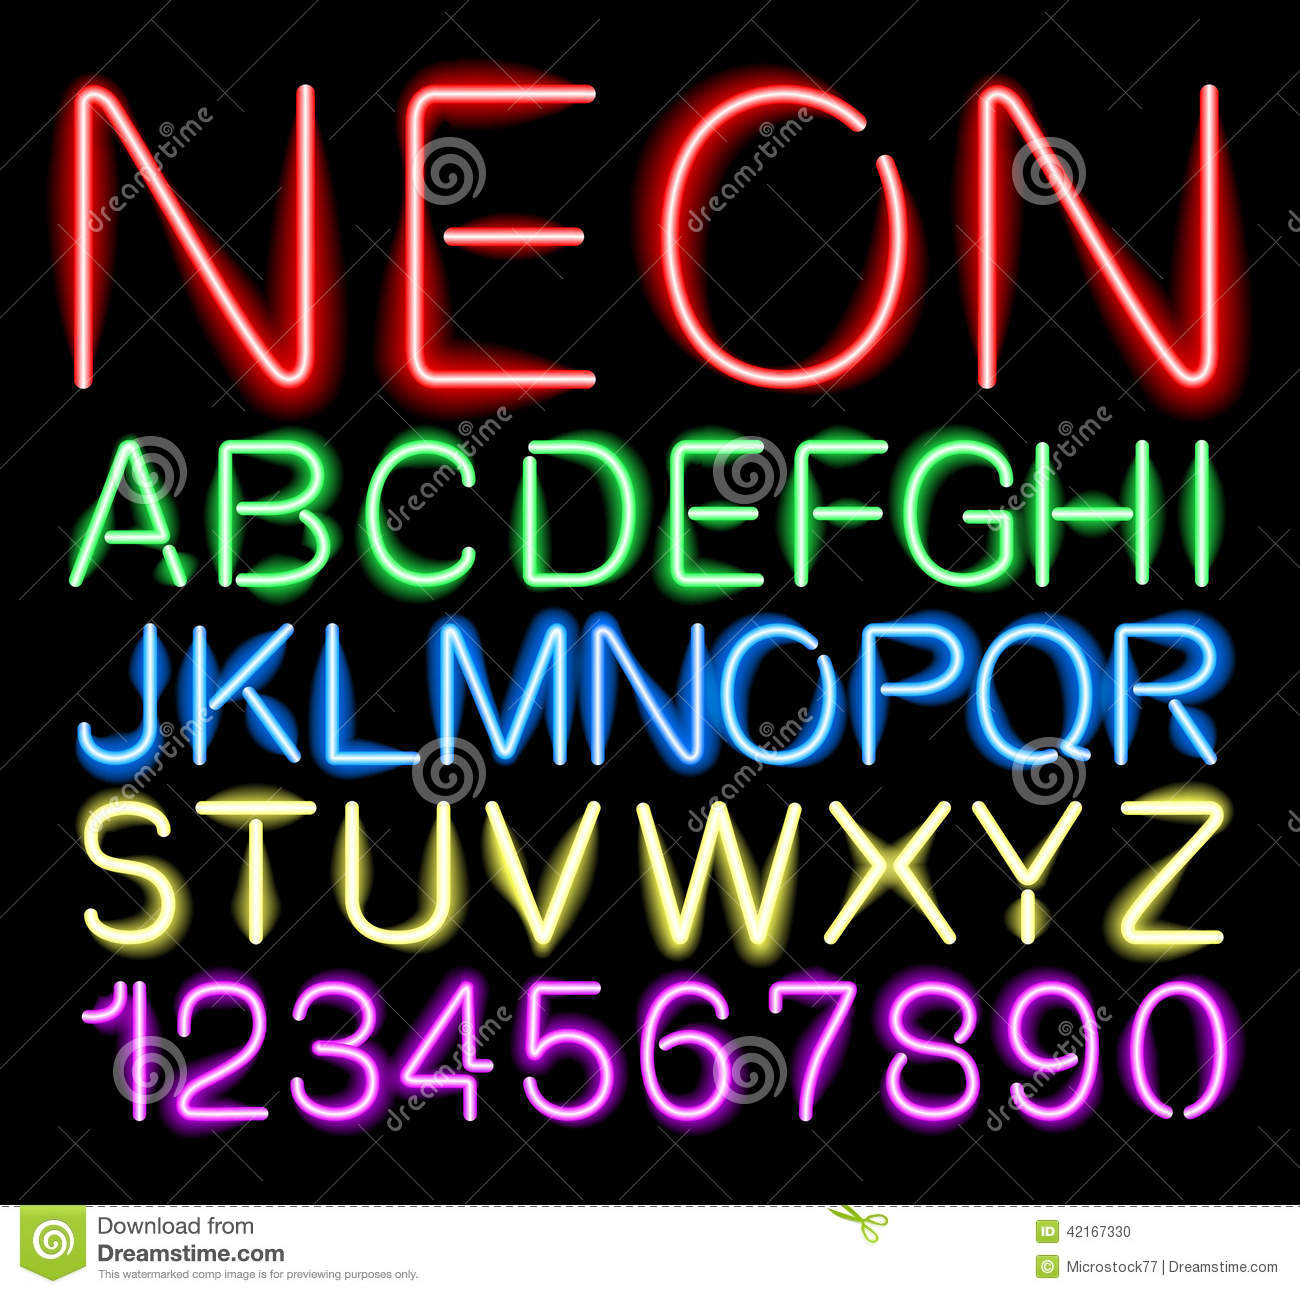 Font Neon Light Illustration 42167330